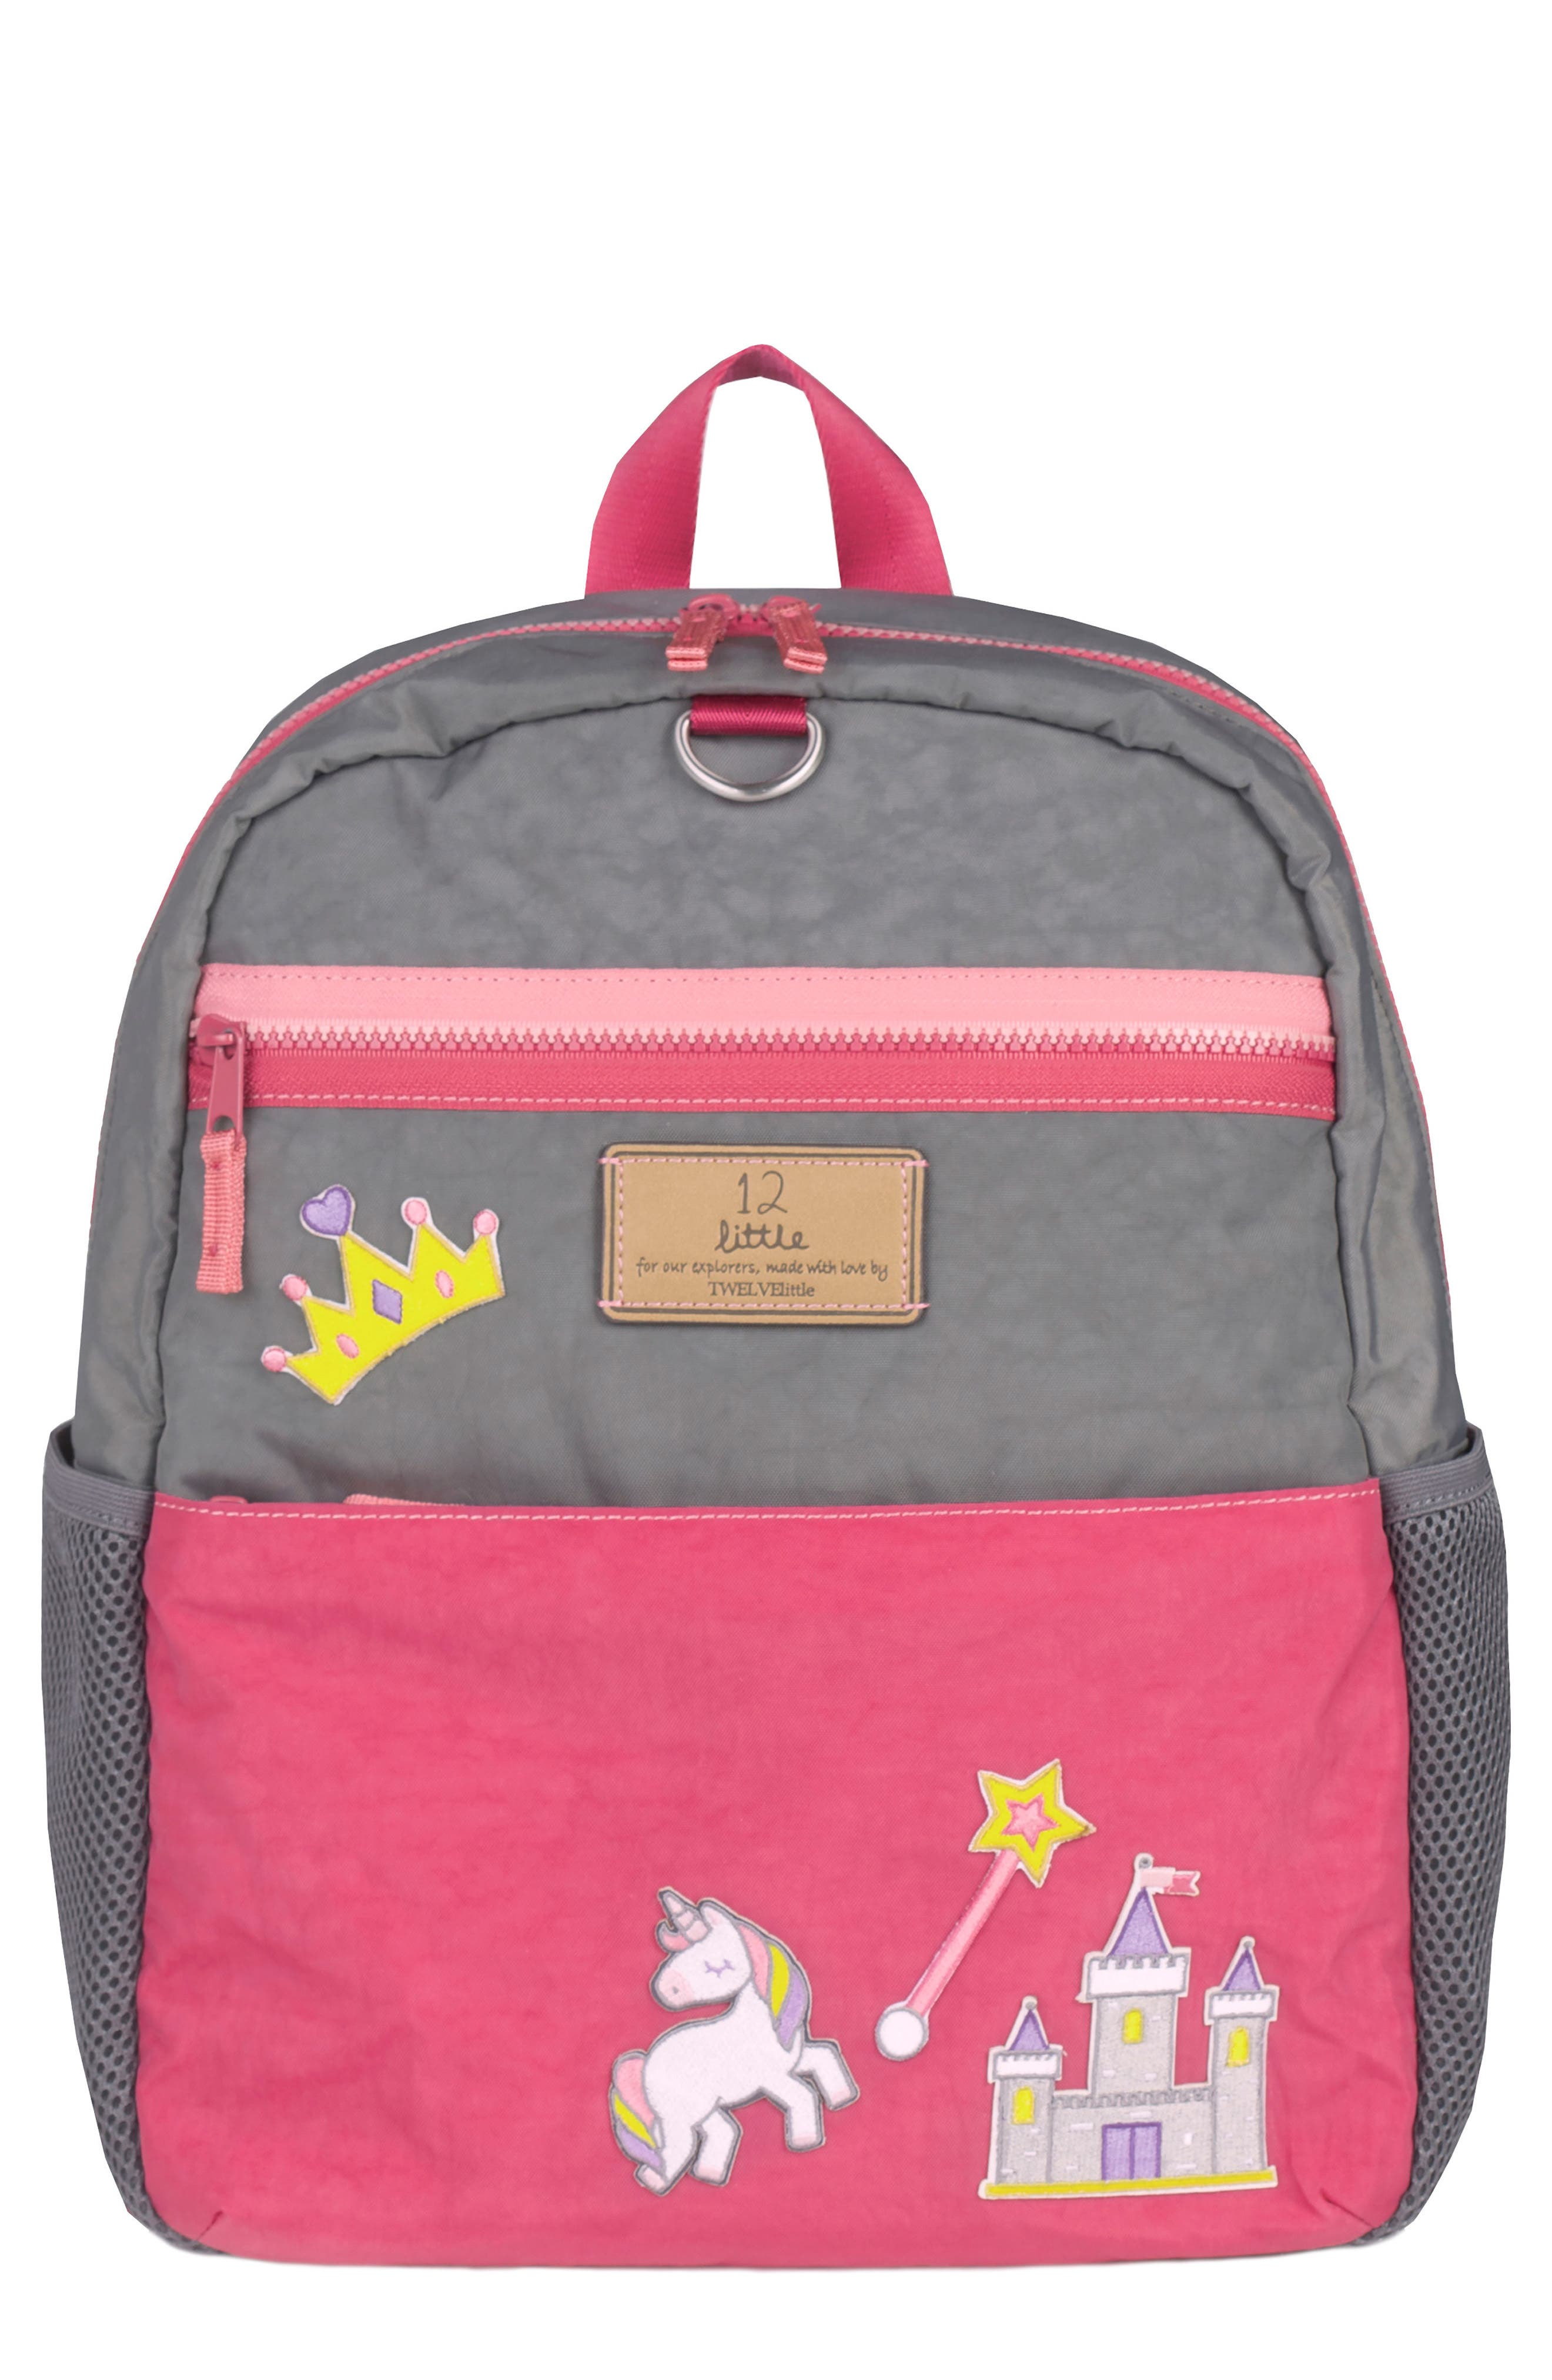 Courage Backpack,                             Main thumbnail 3, color,